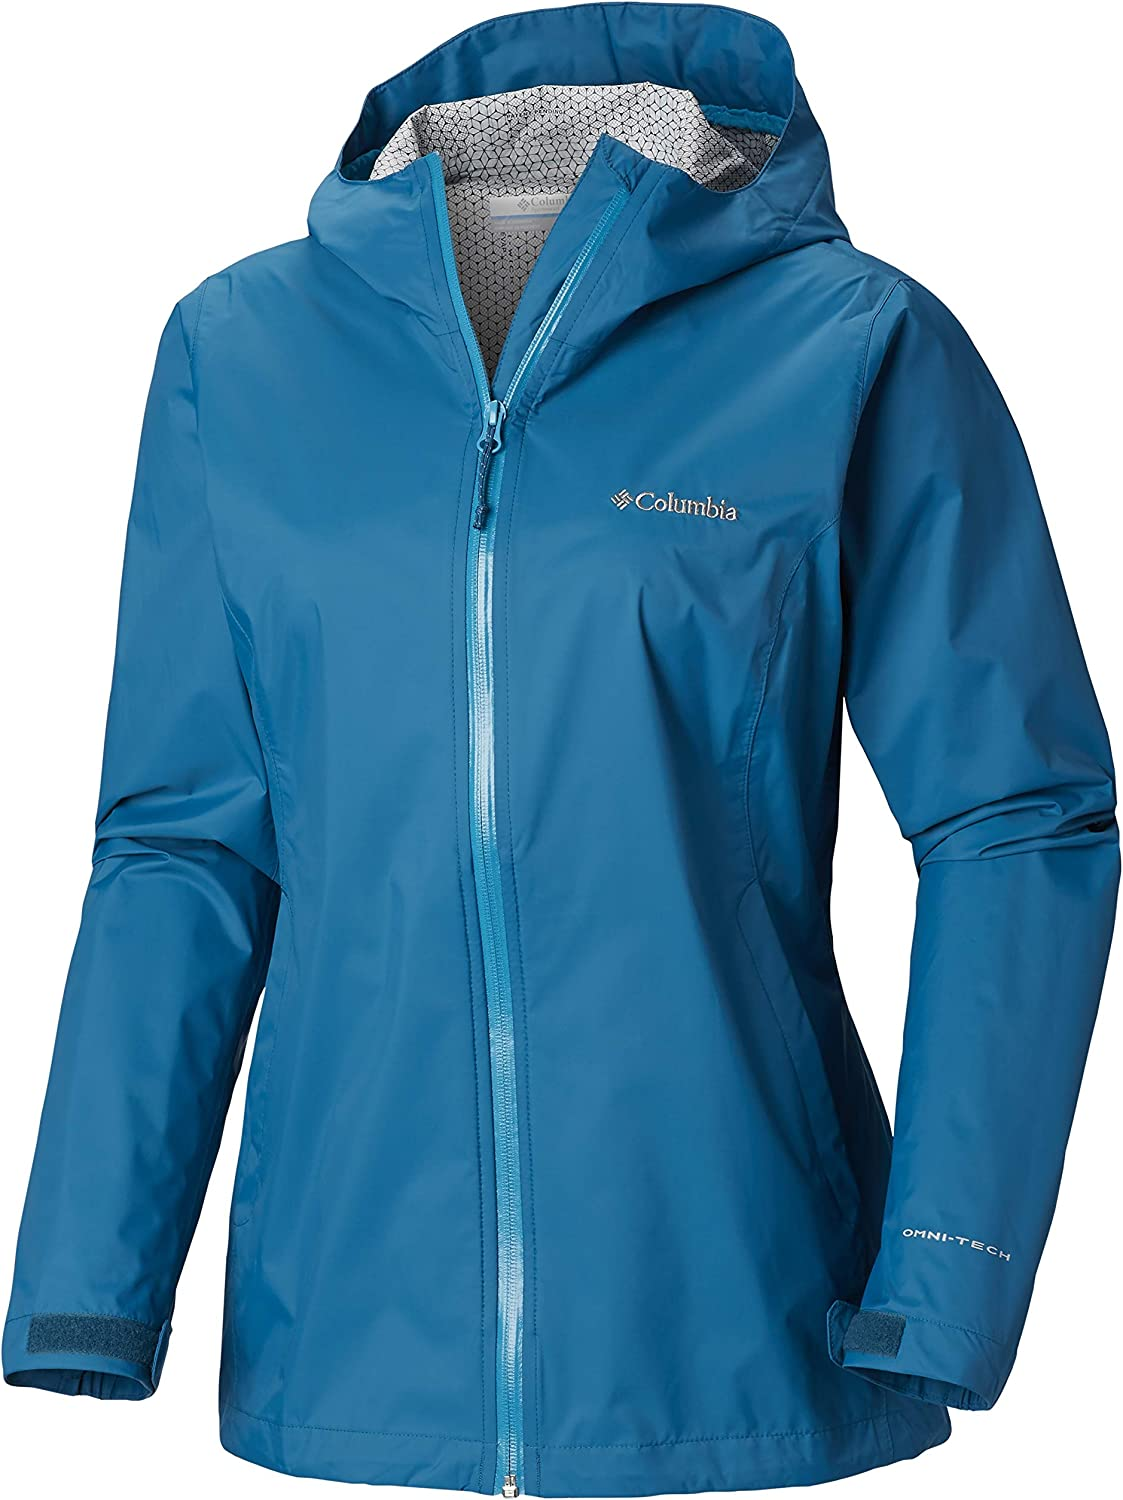 Columbia Women's Evapouration Jacket, Waterproof & Breathable